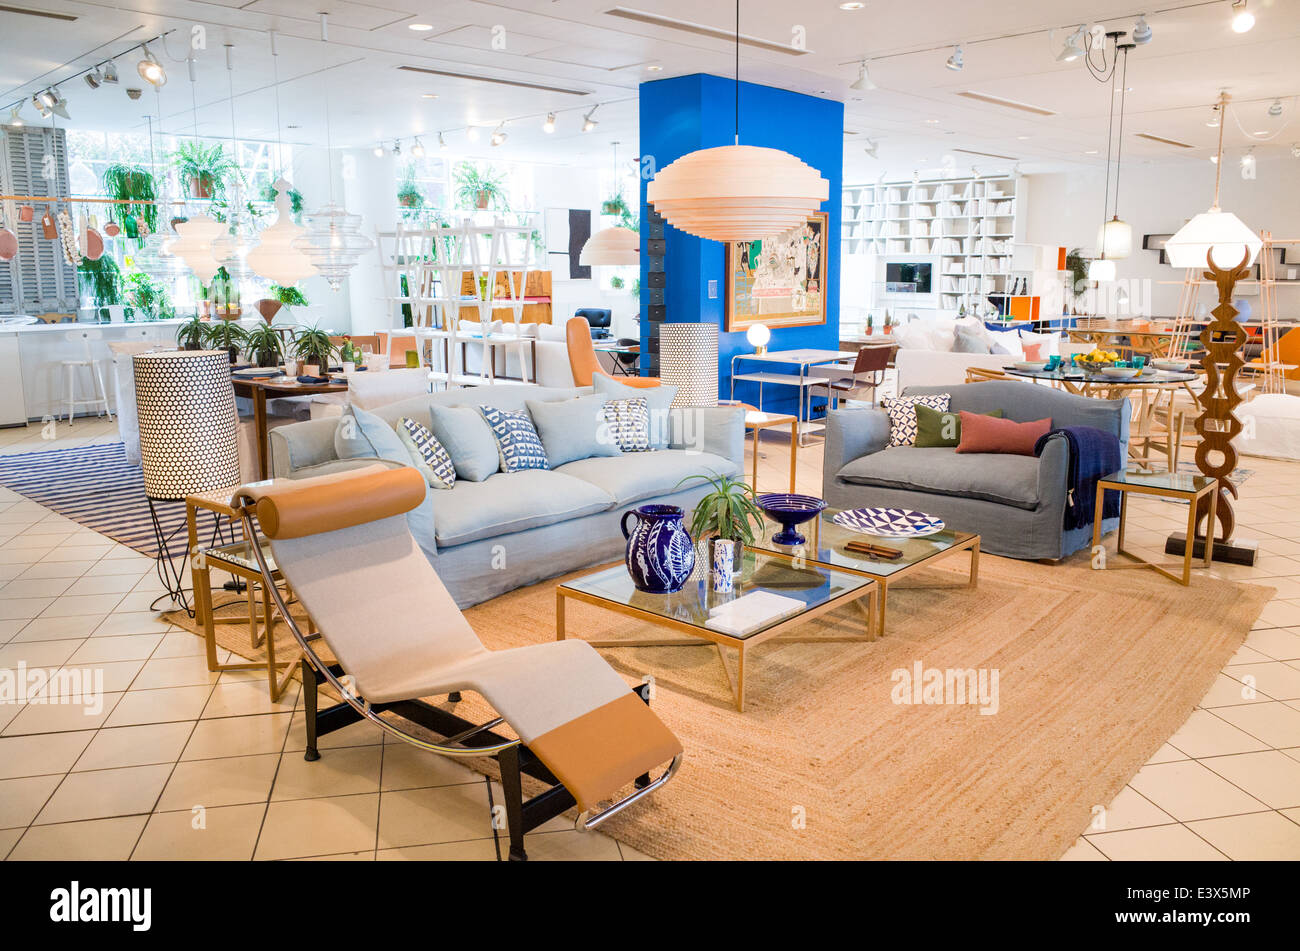 furniture shops stock photos furniture shops stock images alamy